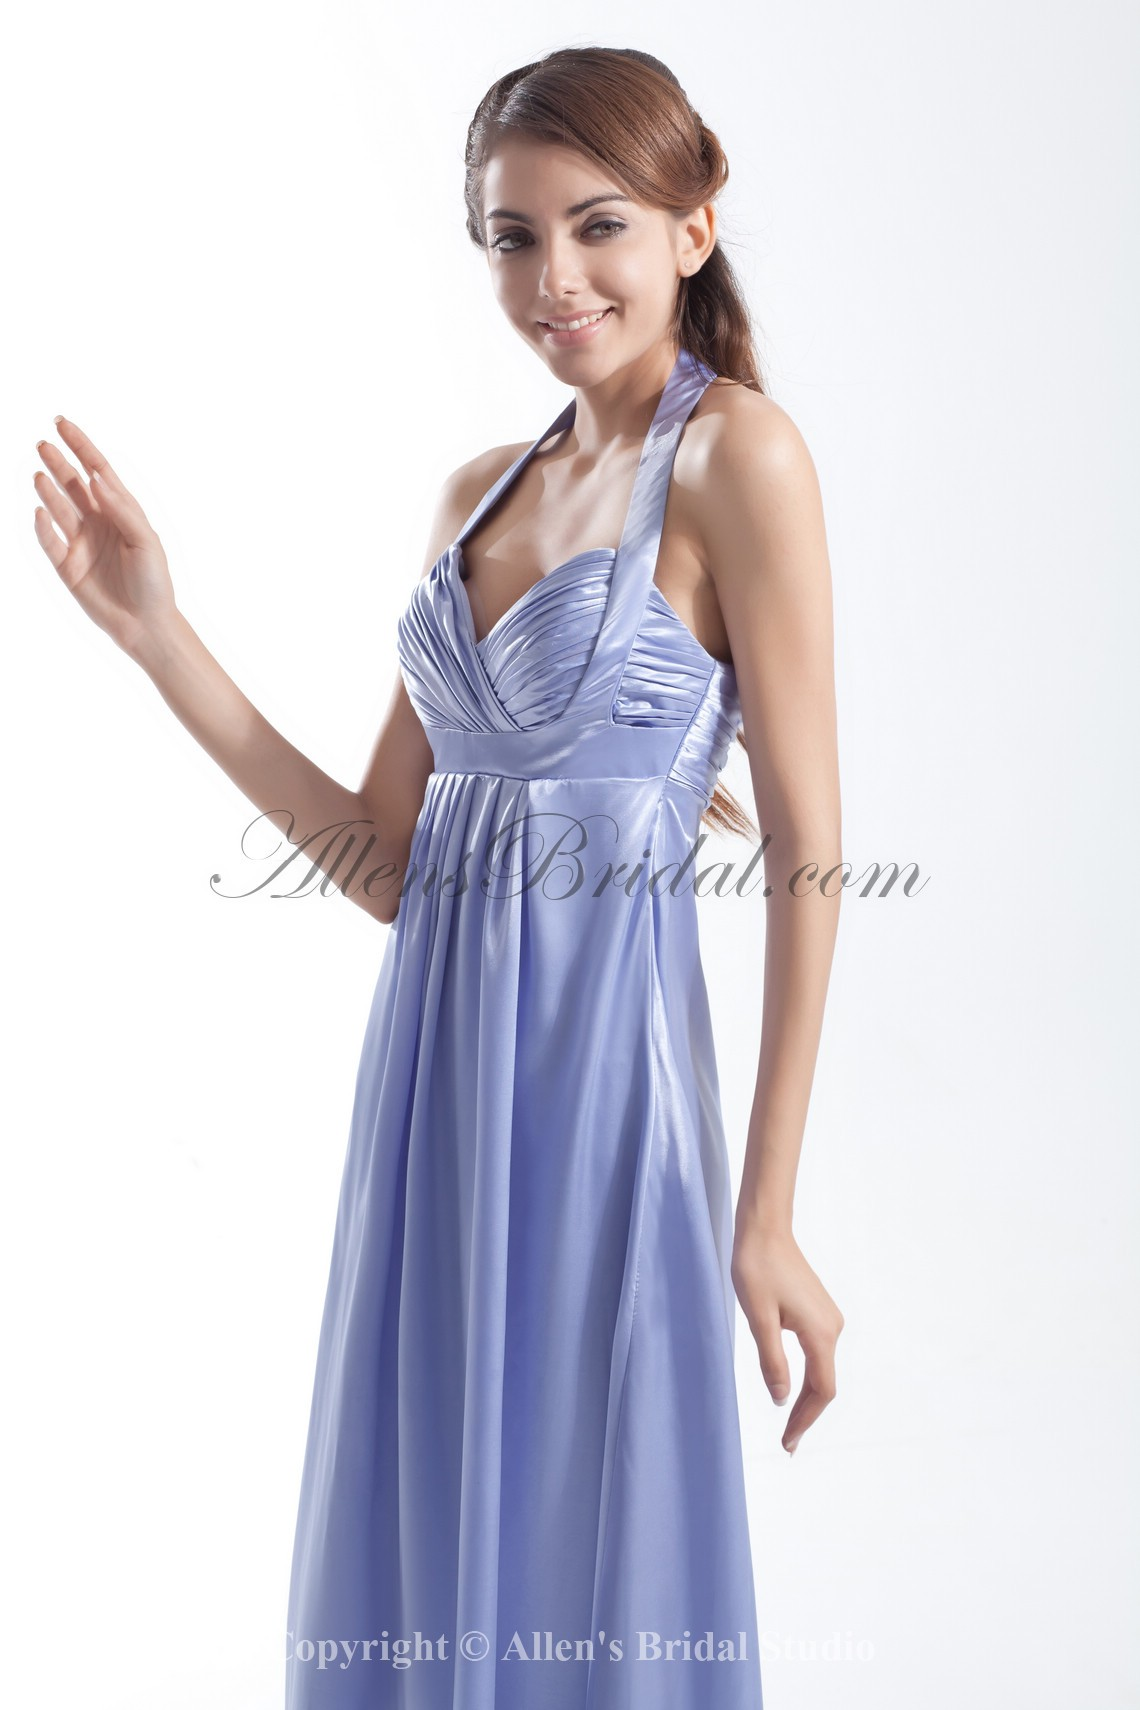 /662-5307/satin-halter-neckline-floor-length-column-prom-dress.jpg